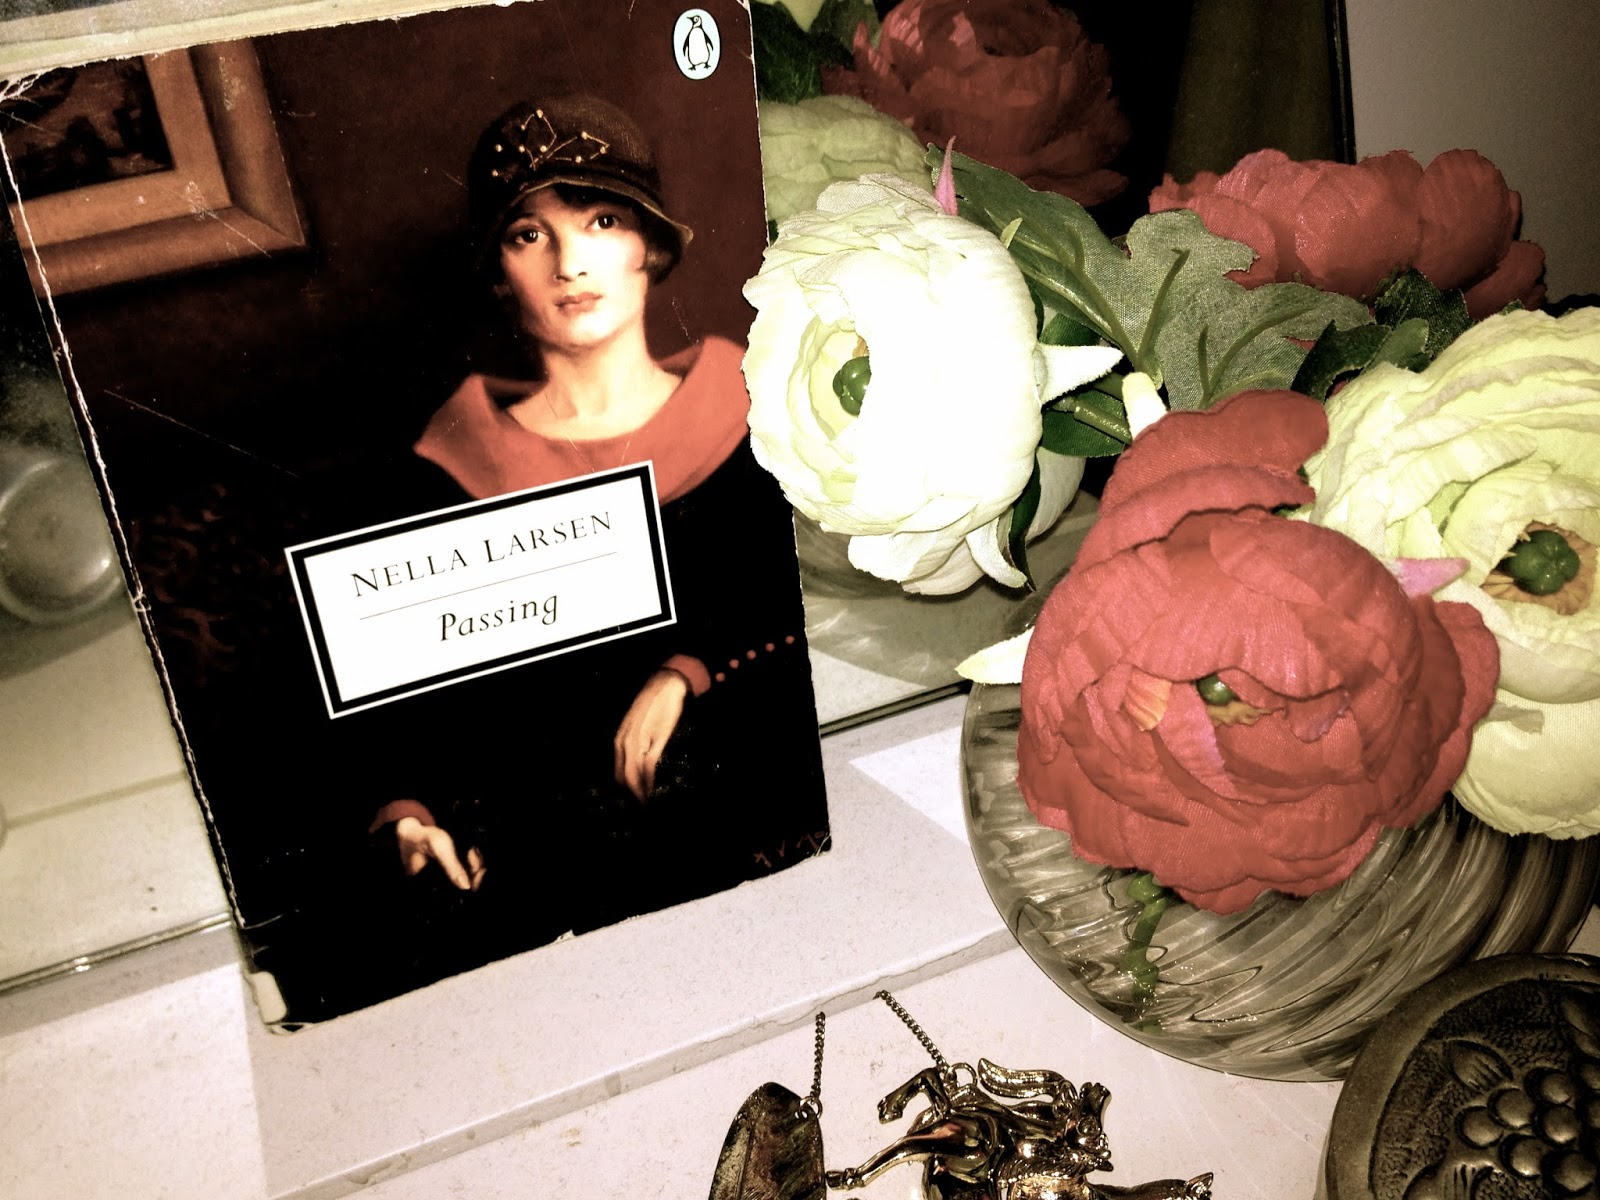 a review of nella larsens novel passing Passing: a novel by nella larsen generally regarded as nella larsen's best work, passing was first published in 1929 but has received a lot of renewed attention because of its close examination of racial & sexual ambiguities.